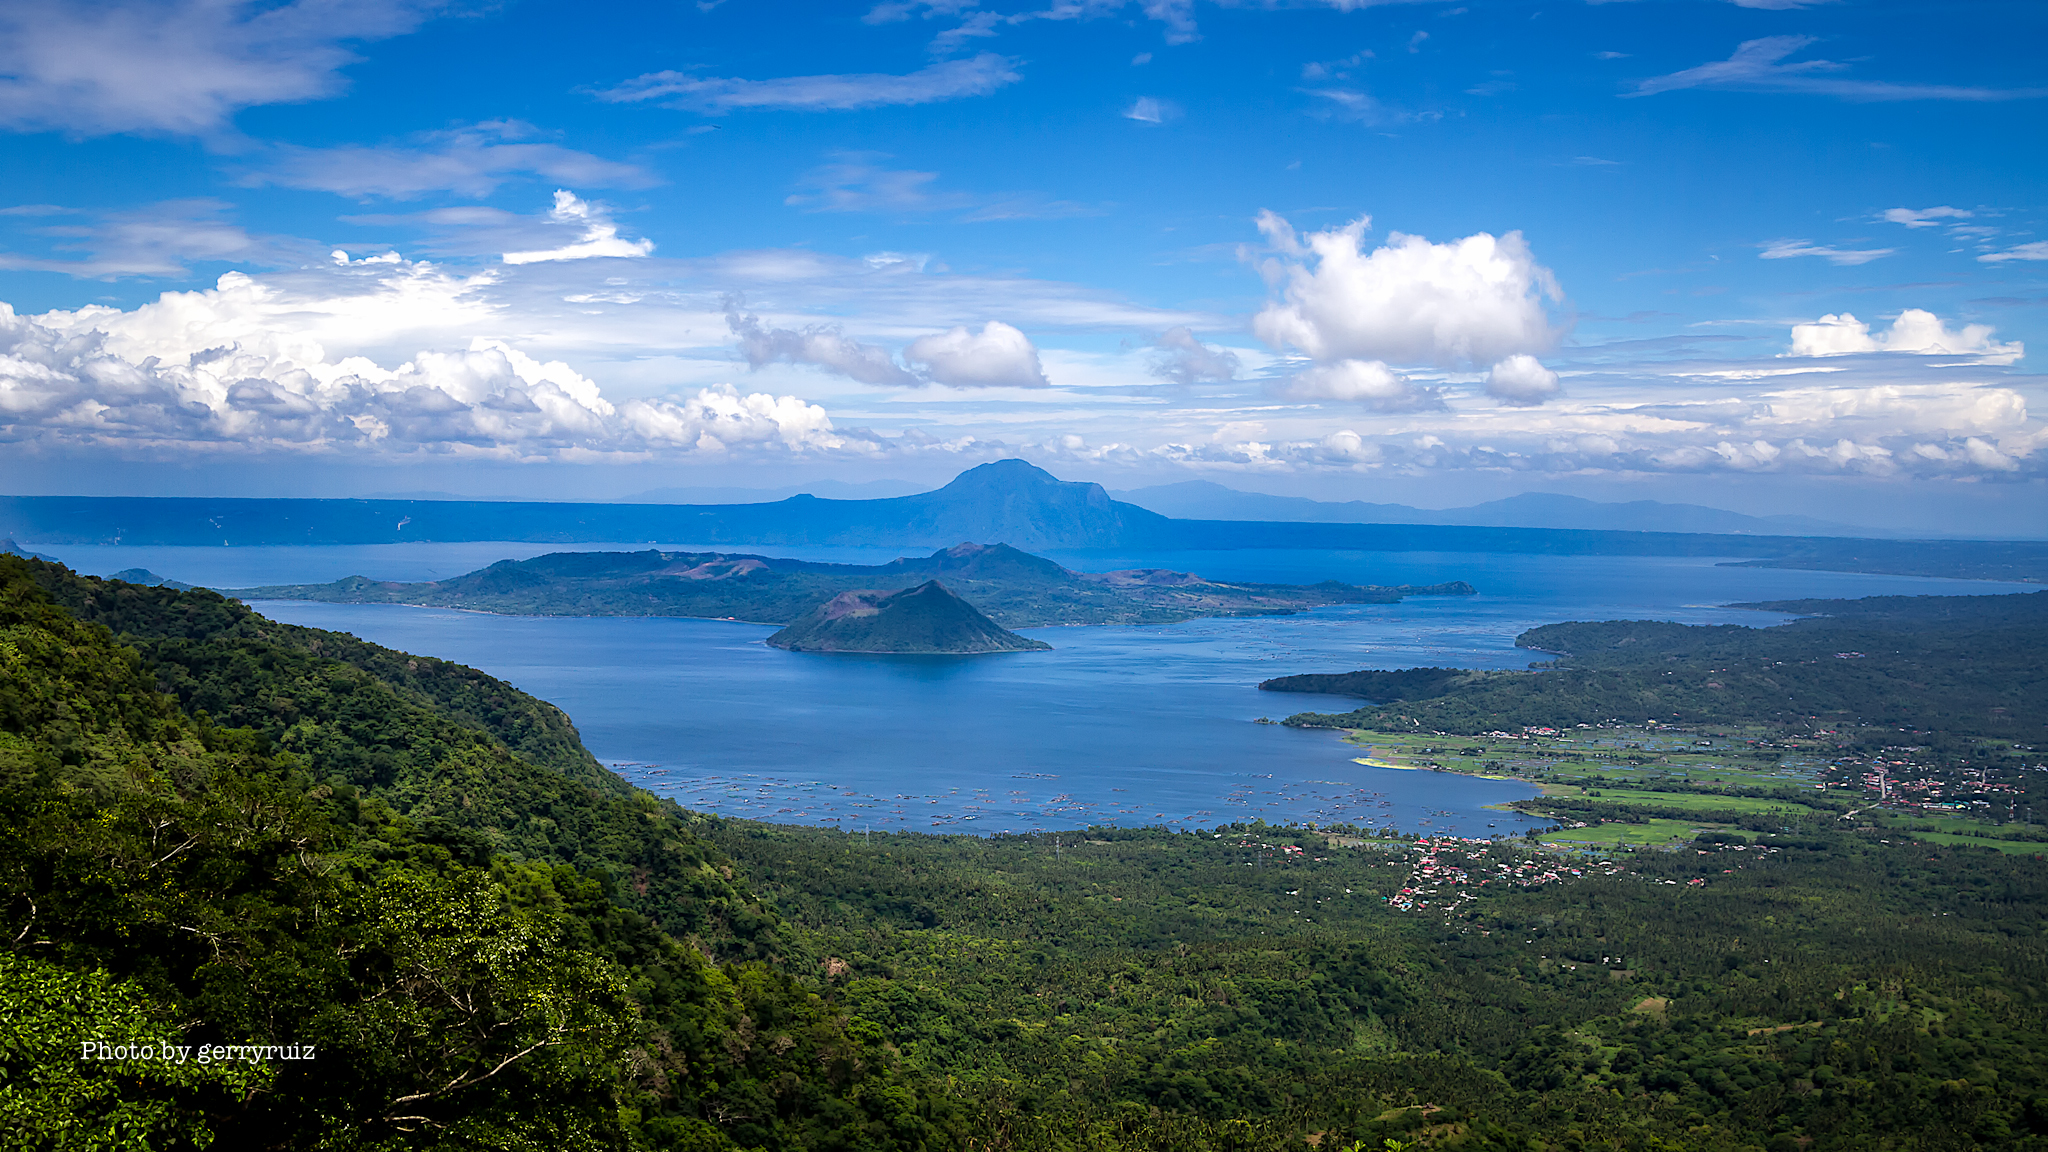 Scenic Spots In The Philippines - Yes, There Are Beautiful And Scenic Spots In Manila!